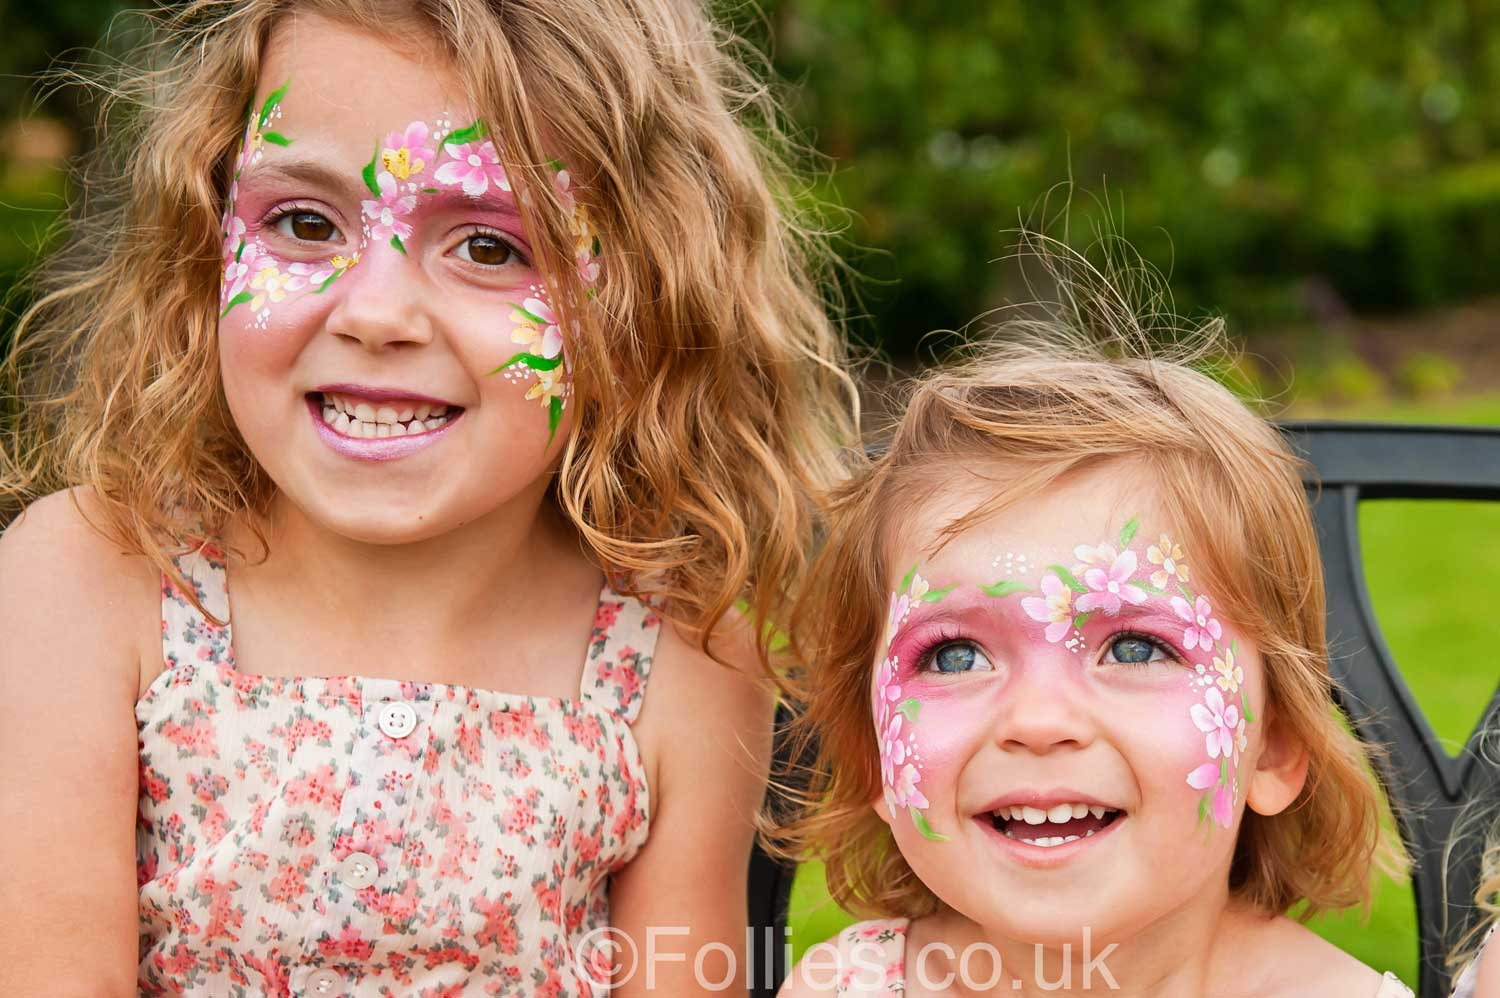 Childrens Face Painting | Follies Face & Body Art